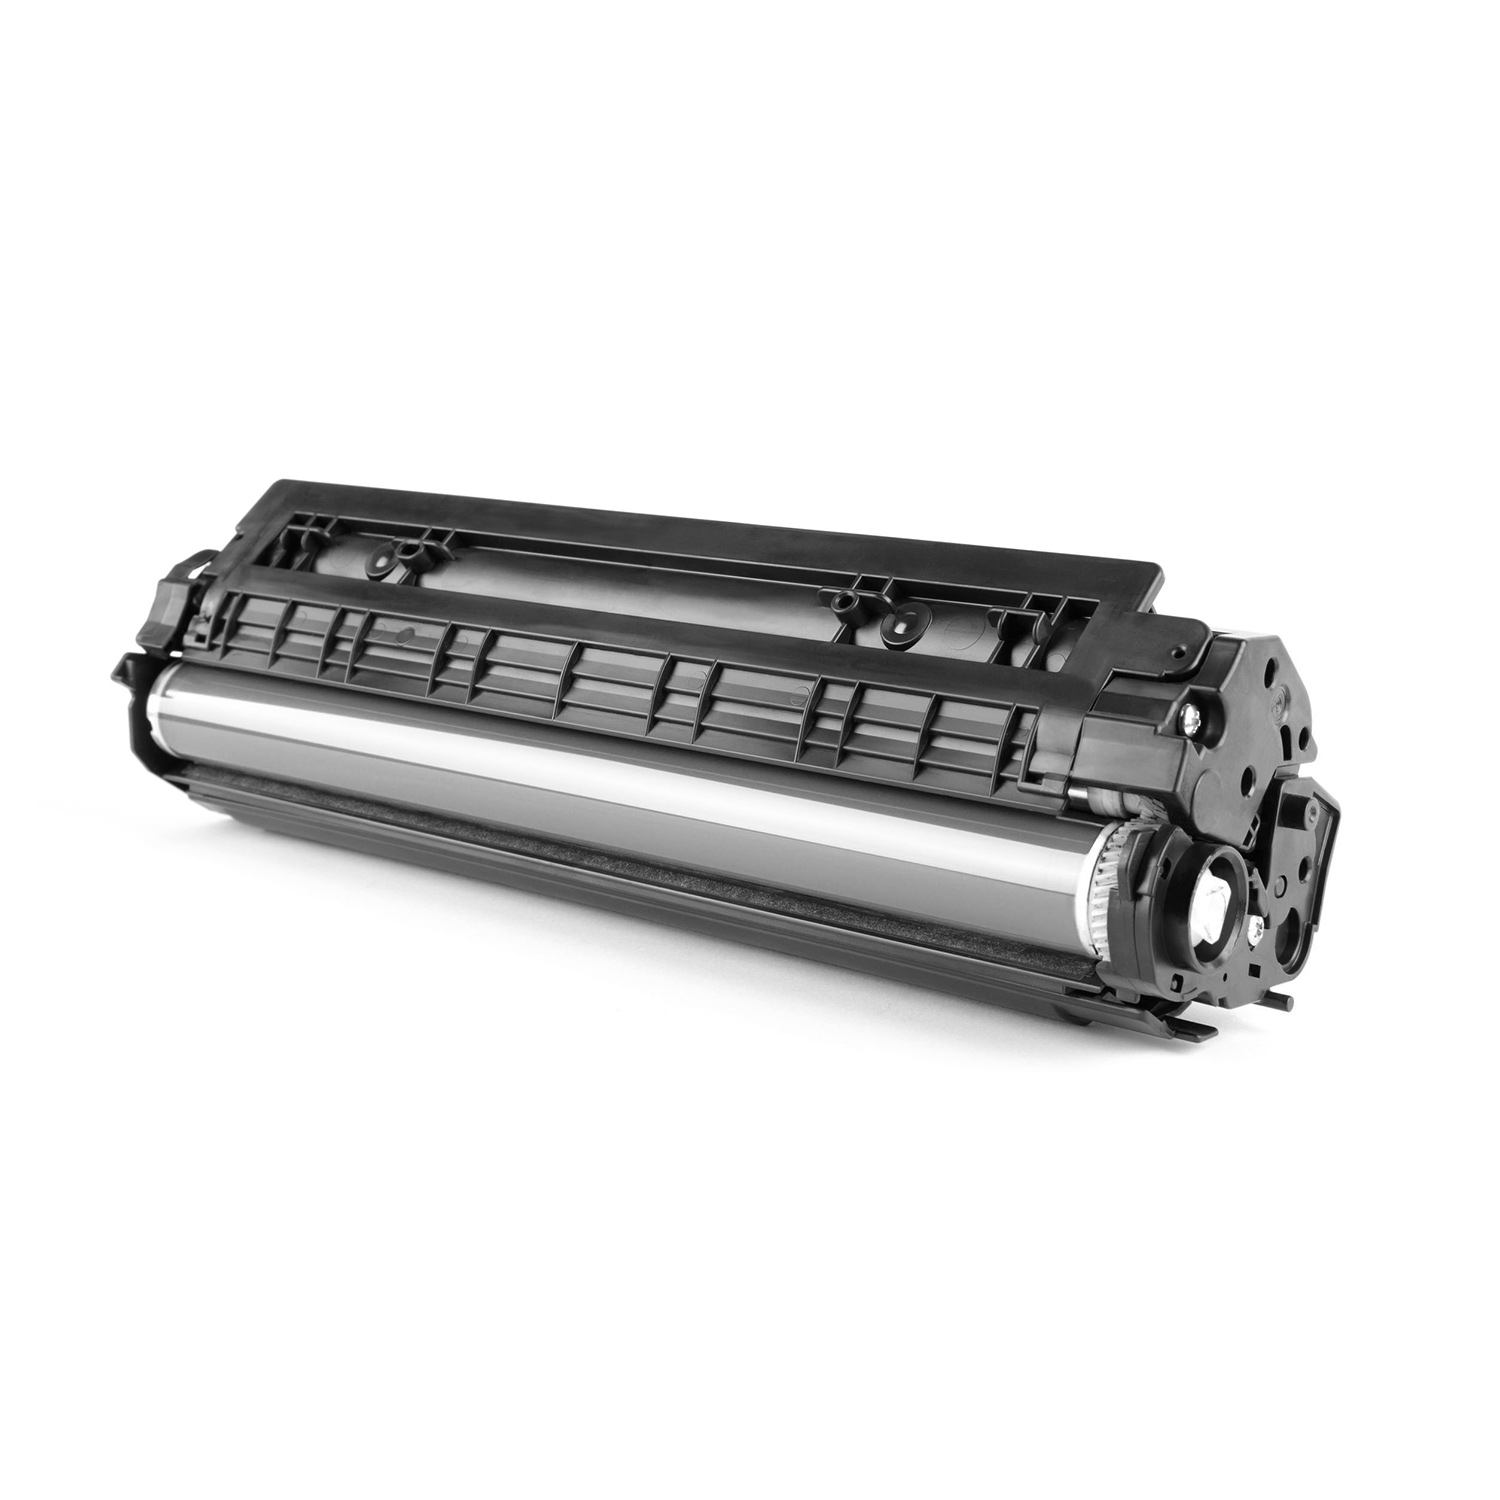 Kyocera 1T02XR0NL0 / TK-4145 Black Toner Cartridge